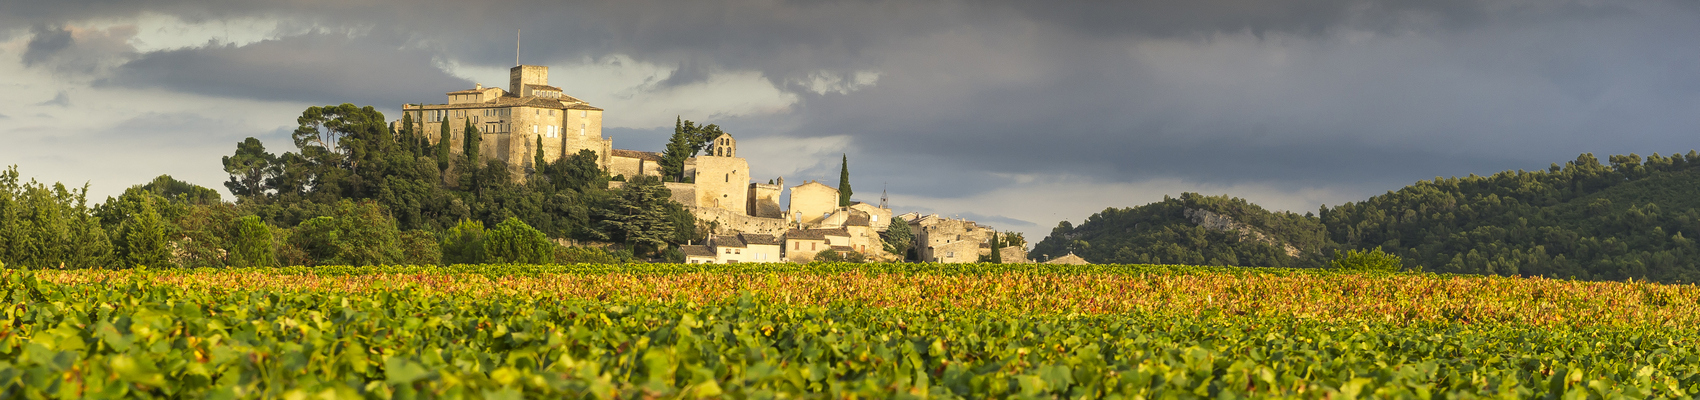 Les villages du Luberon